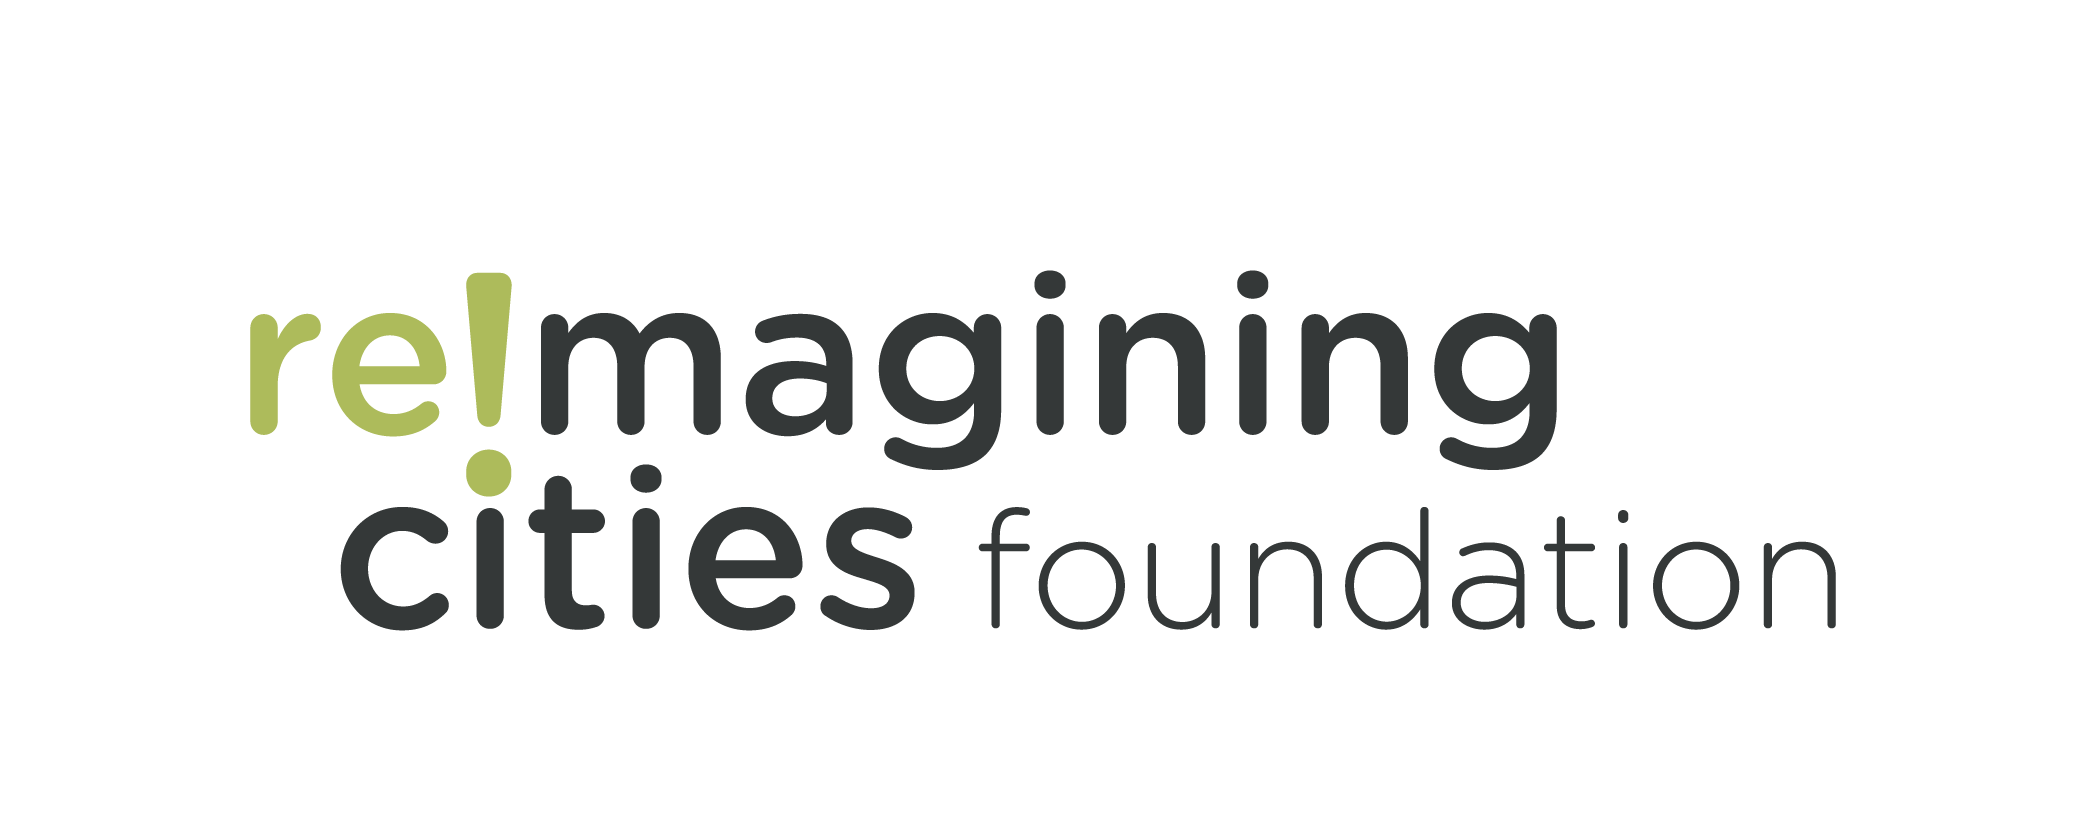 Reimagining Cities Foundation